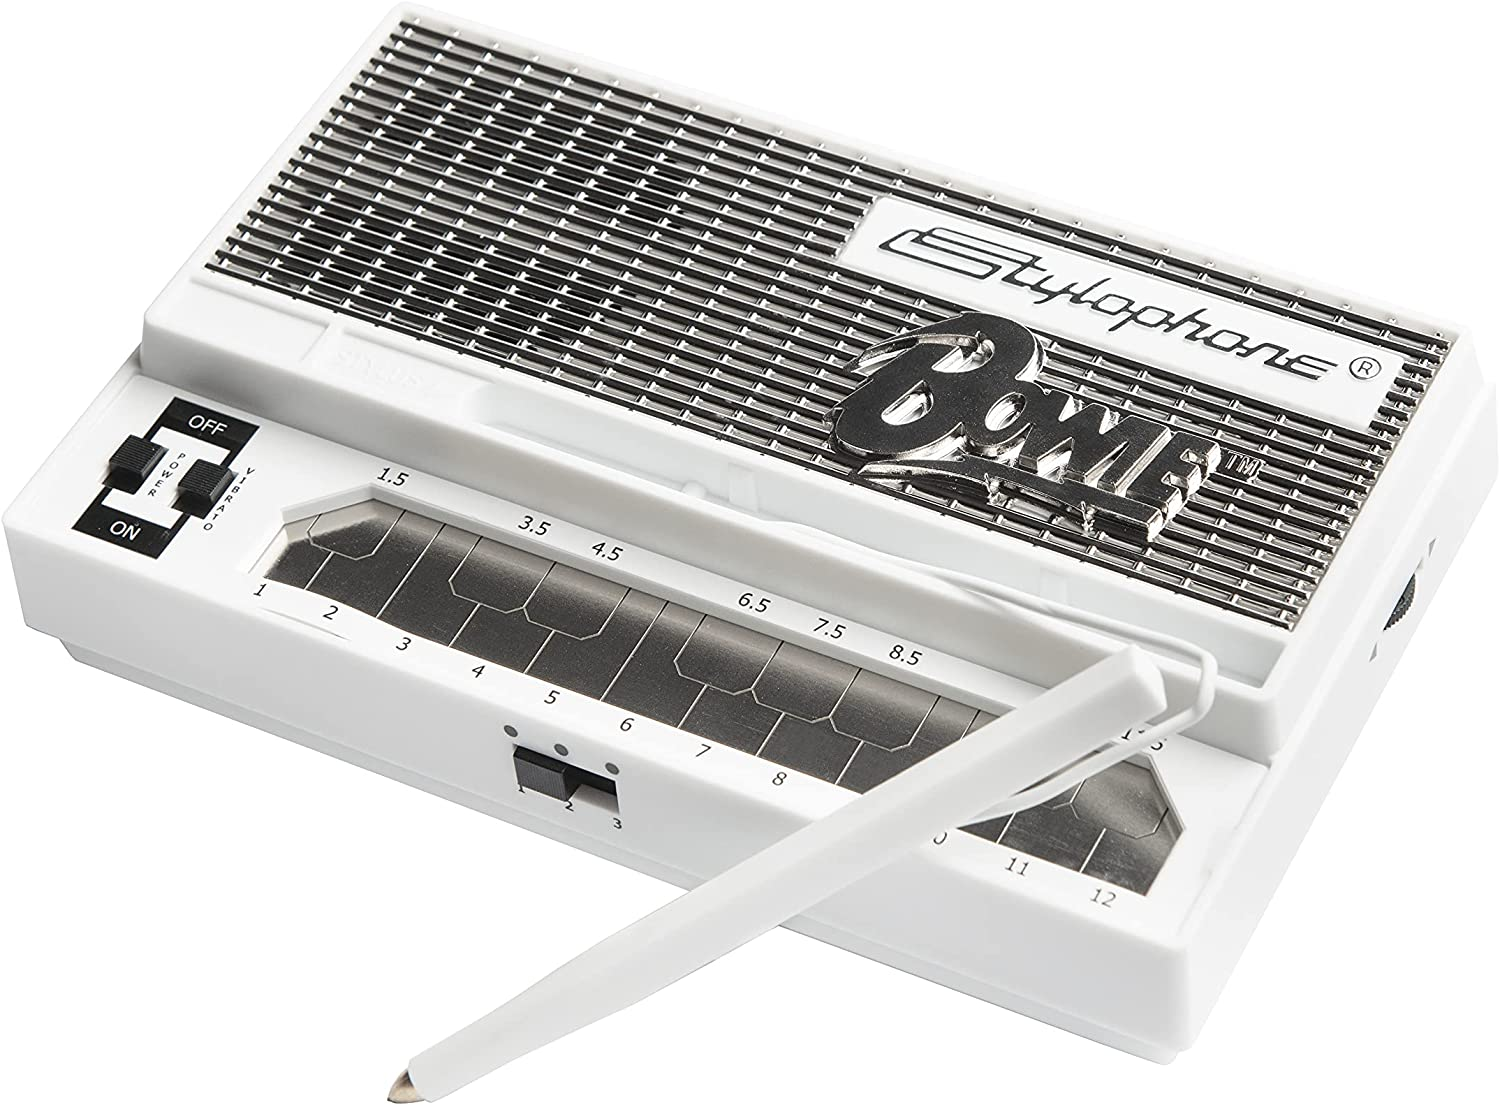 Bowie edition stylophone